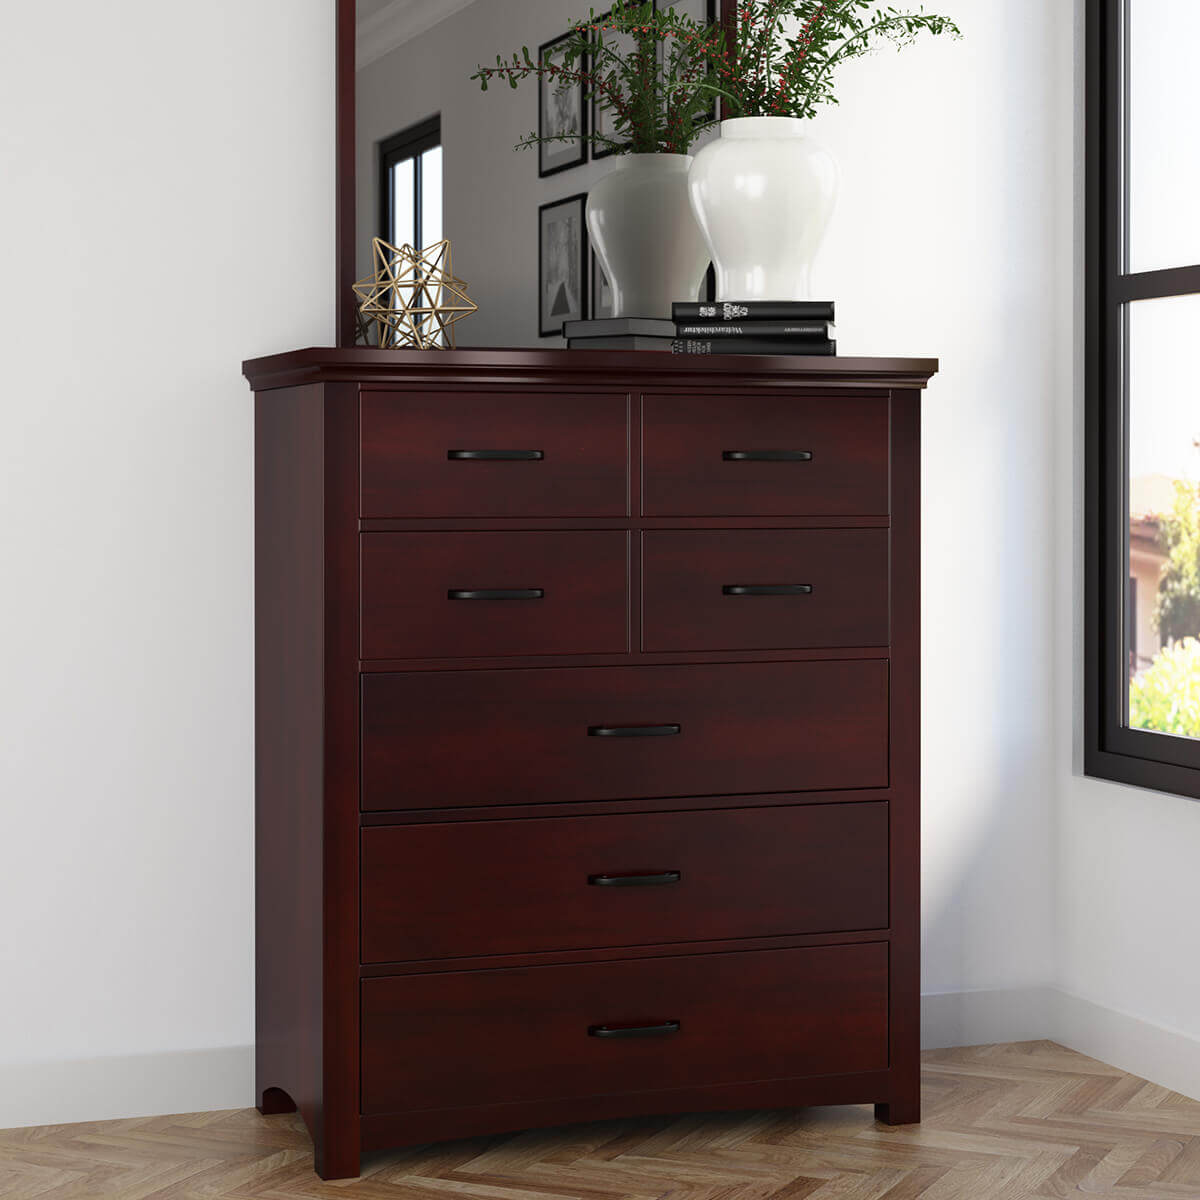 Vindemia Solid Mahogany Wood Tall Bedroom Dresser Chest With 7 Drawers